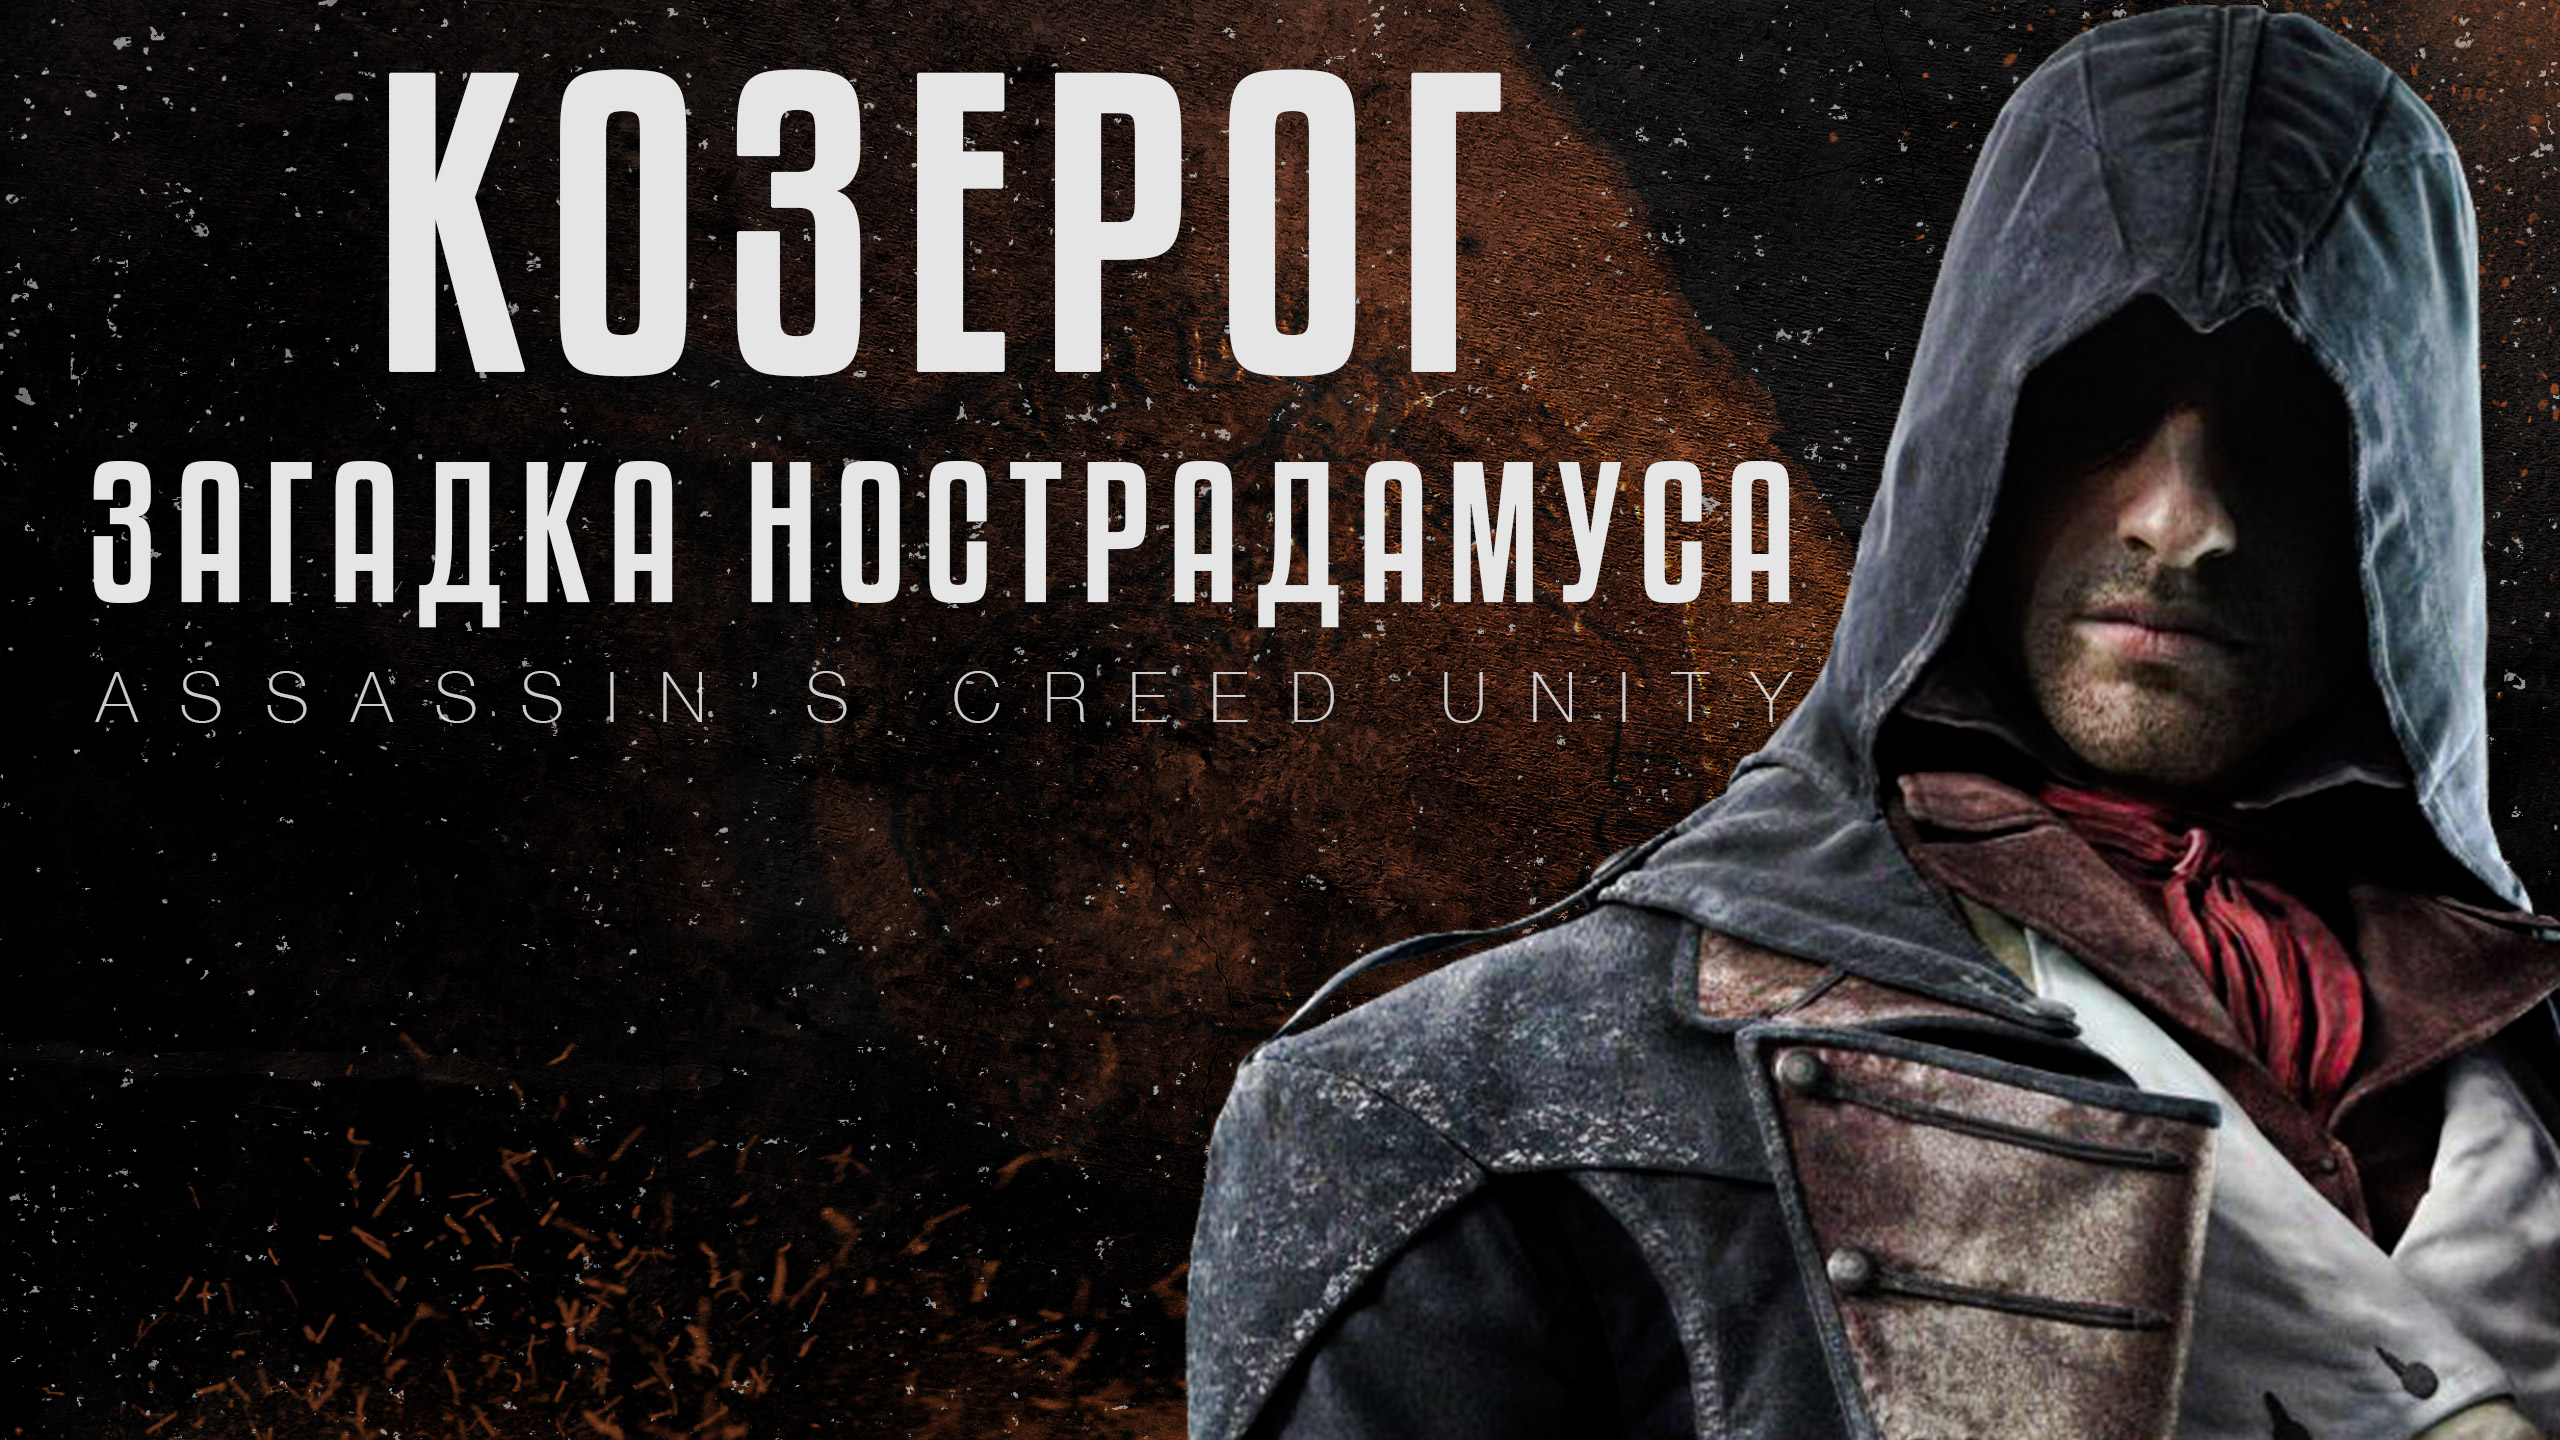 Нострадамус в игре Assassin's Creed Unity (Козерог)